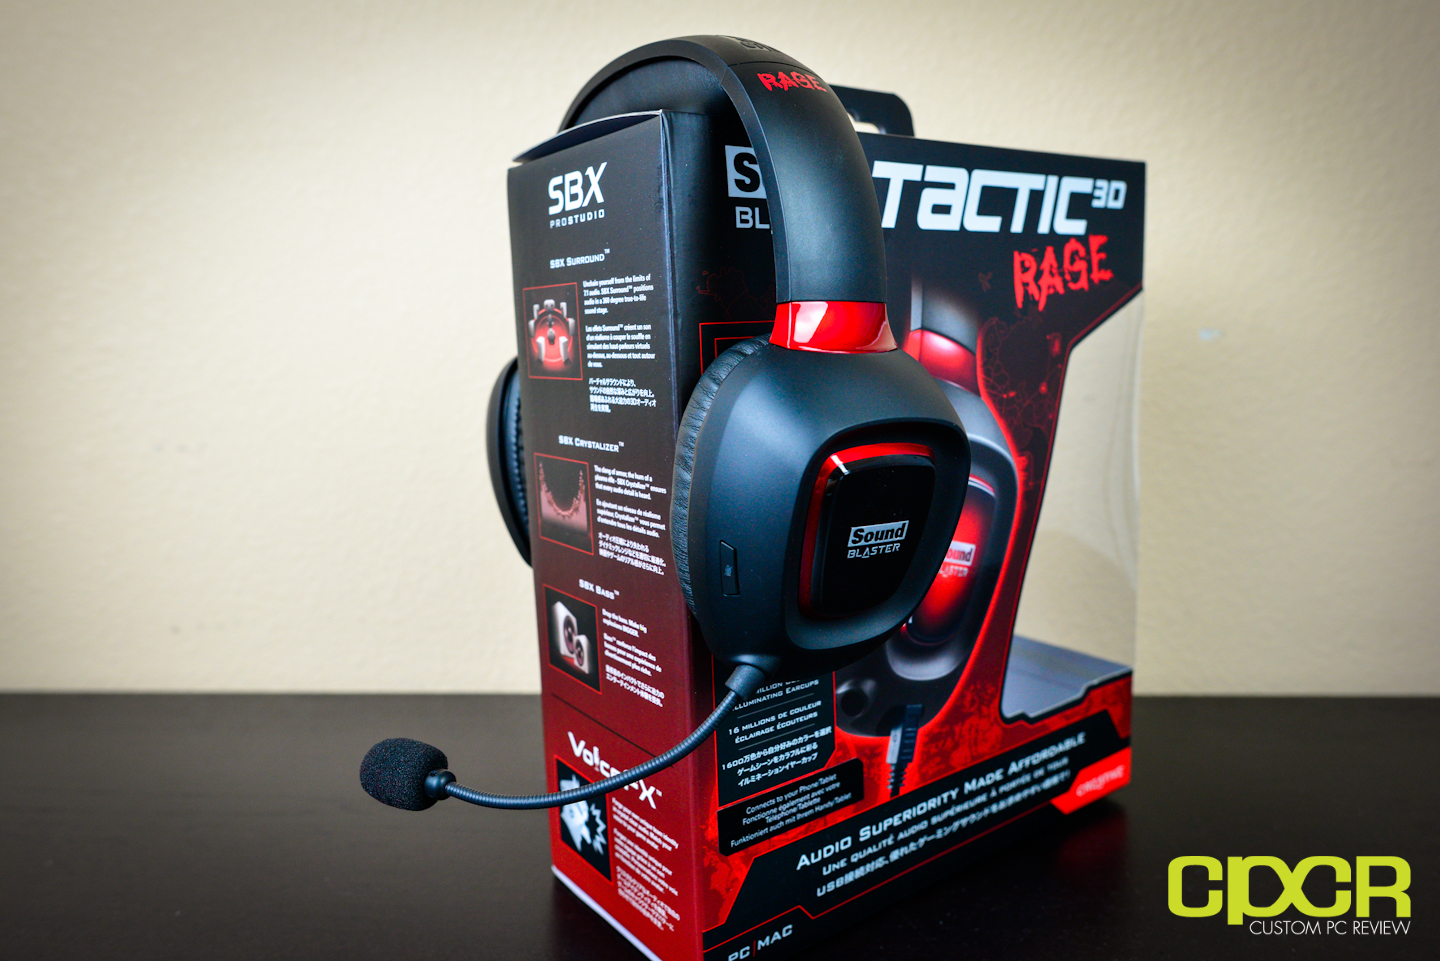 CREATIVE SOUND BLASTER TACTIC3D RAGE WINDOWS 8 DRIVERS DOWNLOAD